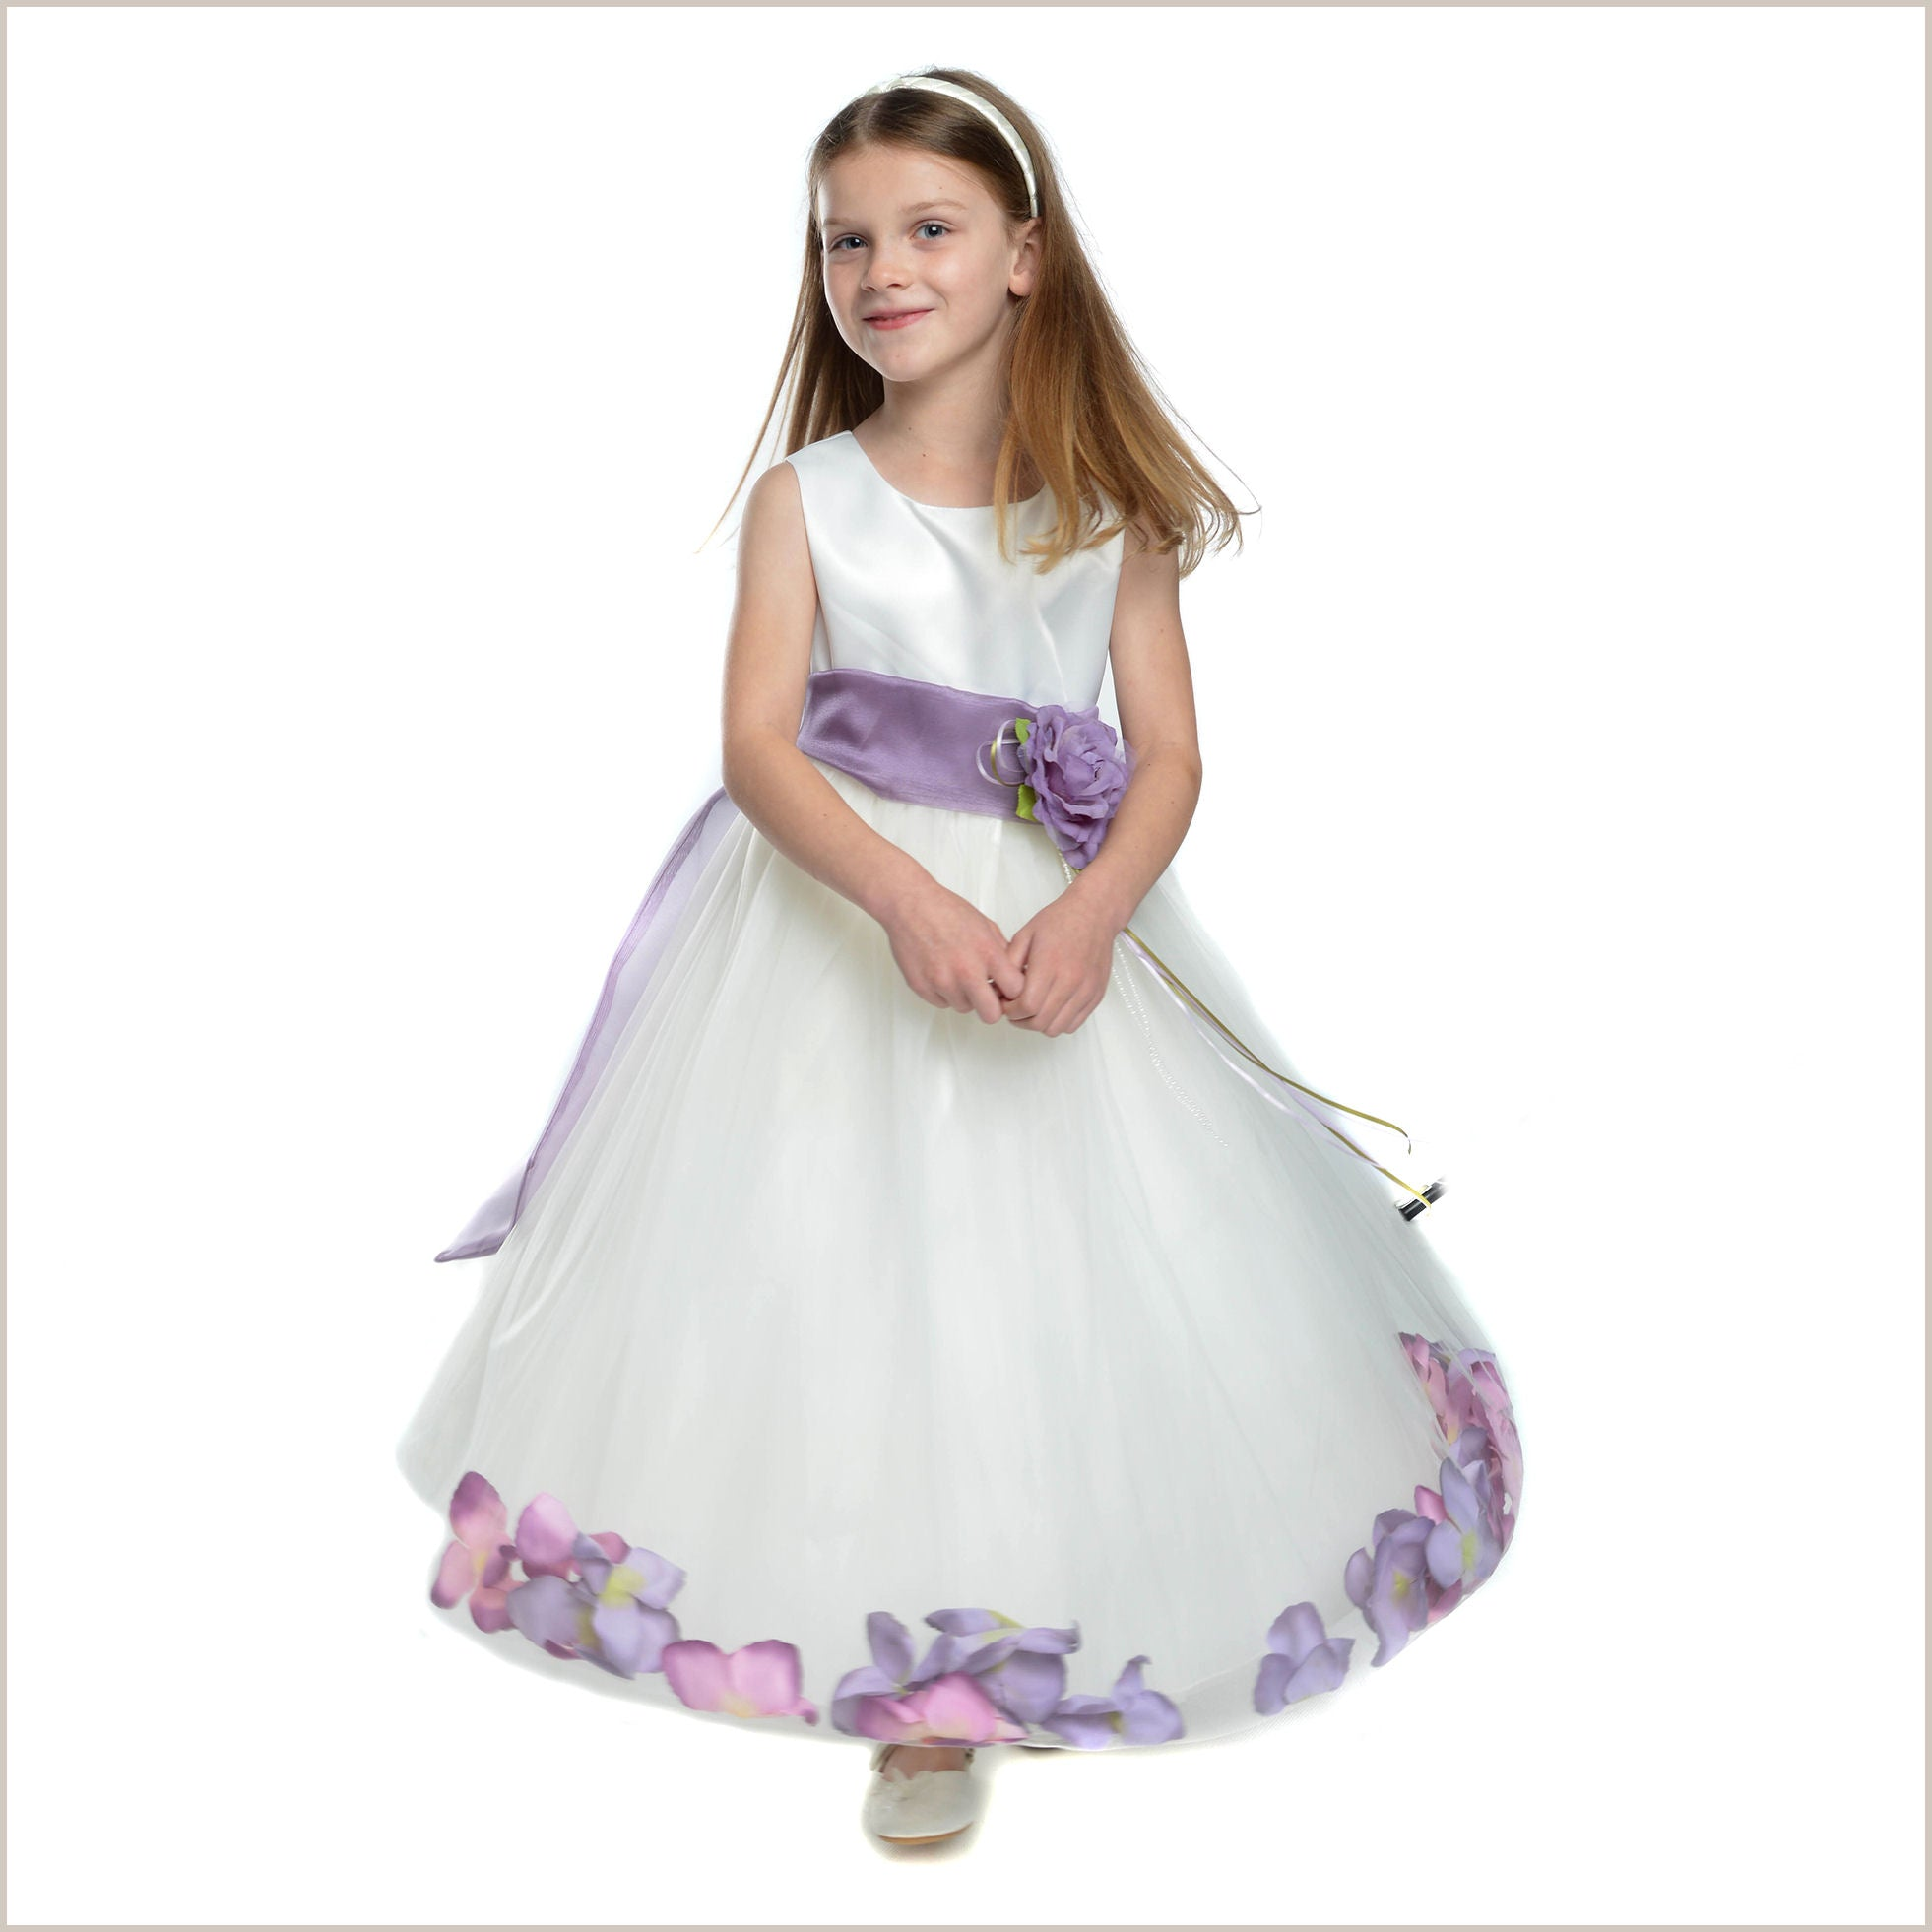 657e12fac99 Loose Petals in Skirt Flower Girl Dress in Ivory and Lilac